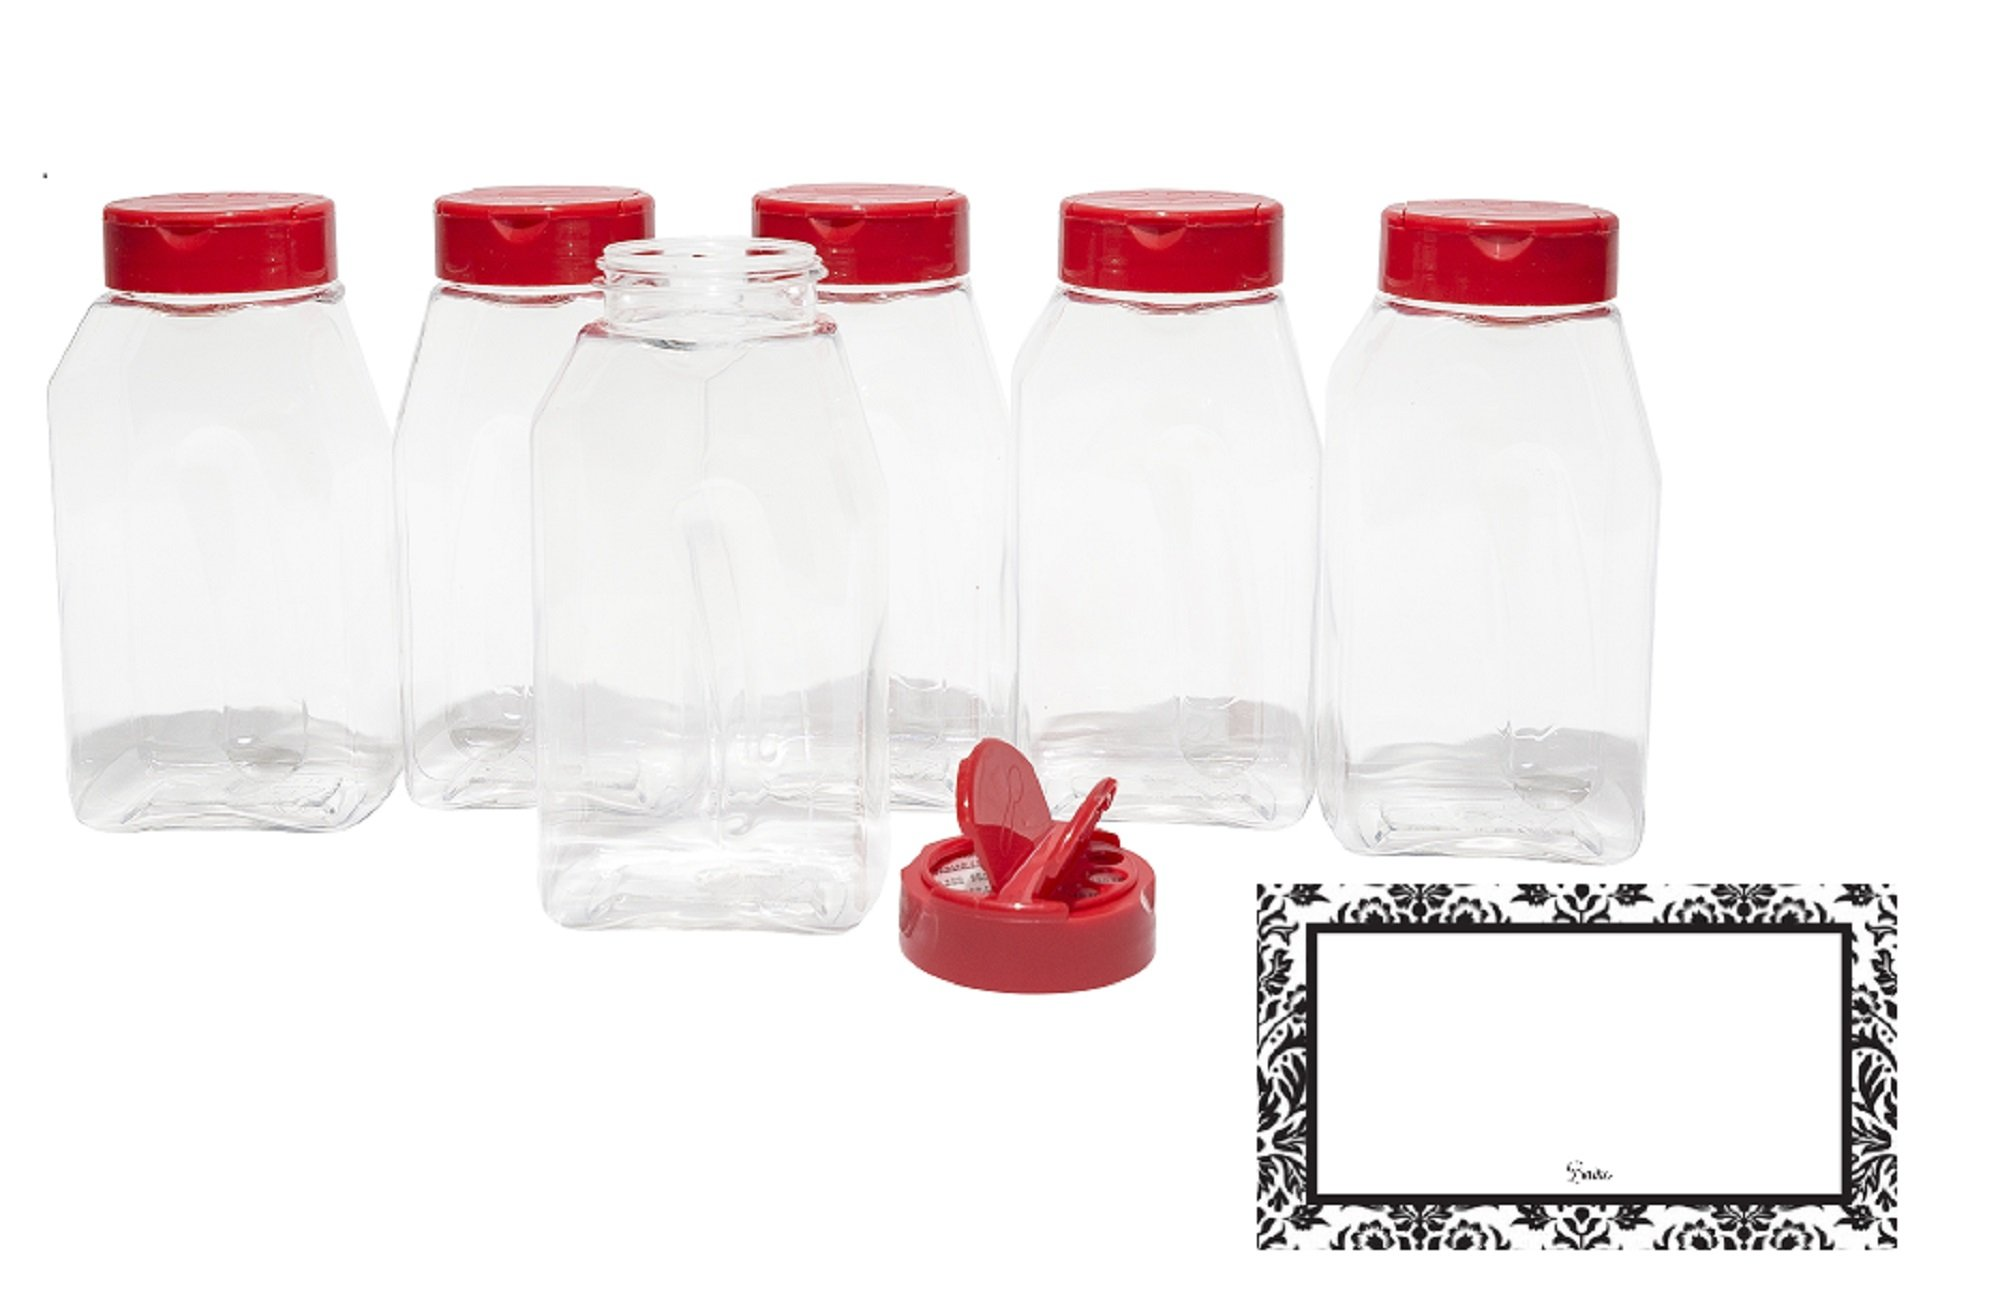 Tosnail 16 Pack 17 Fluid Oz Clear Plastic Spice Jars Spice Containers Spice